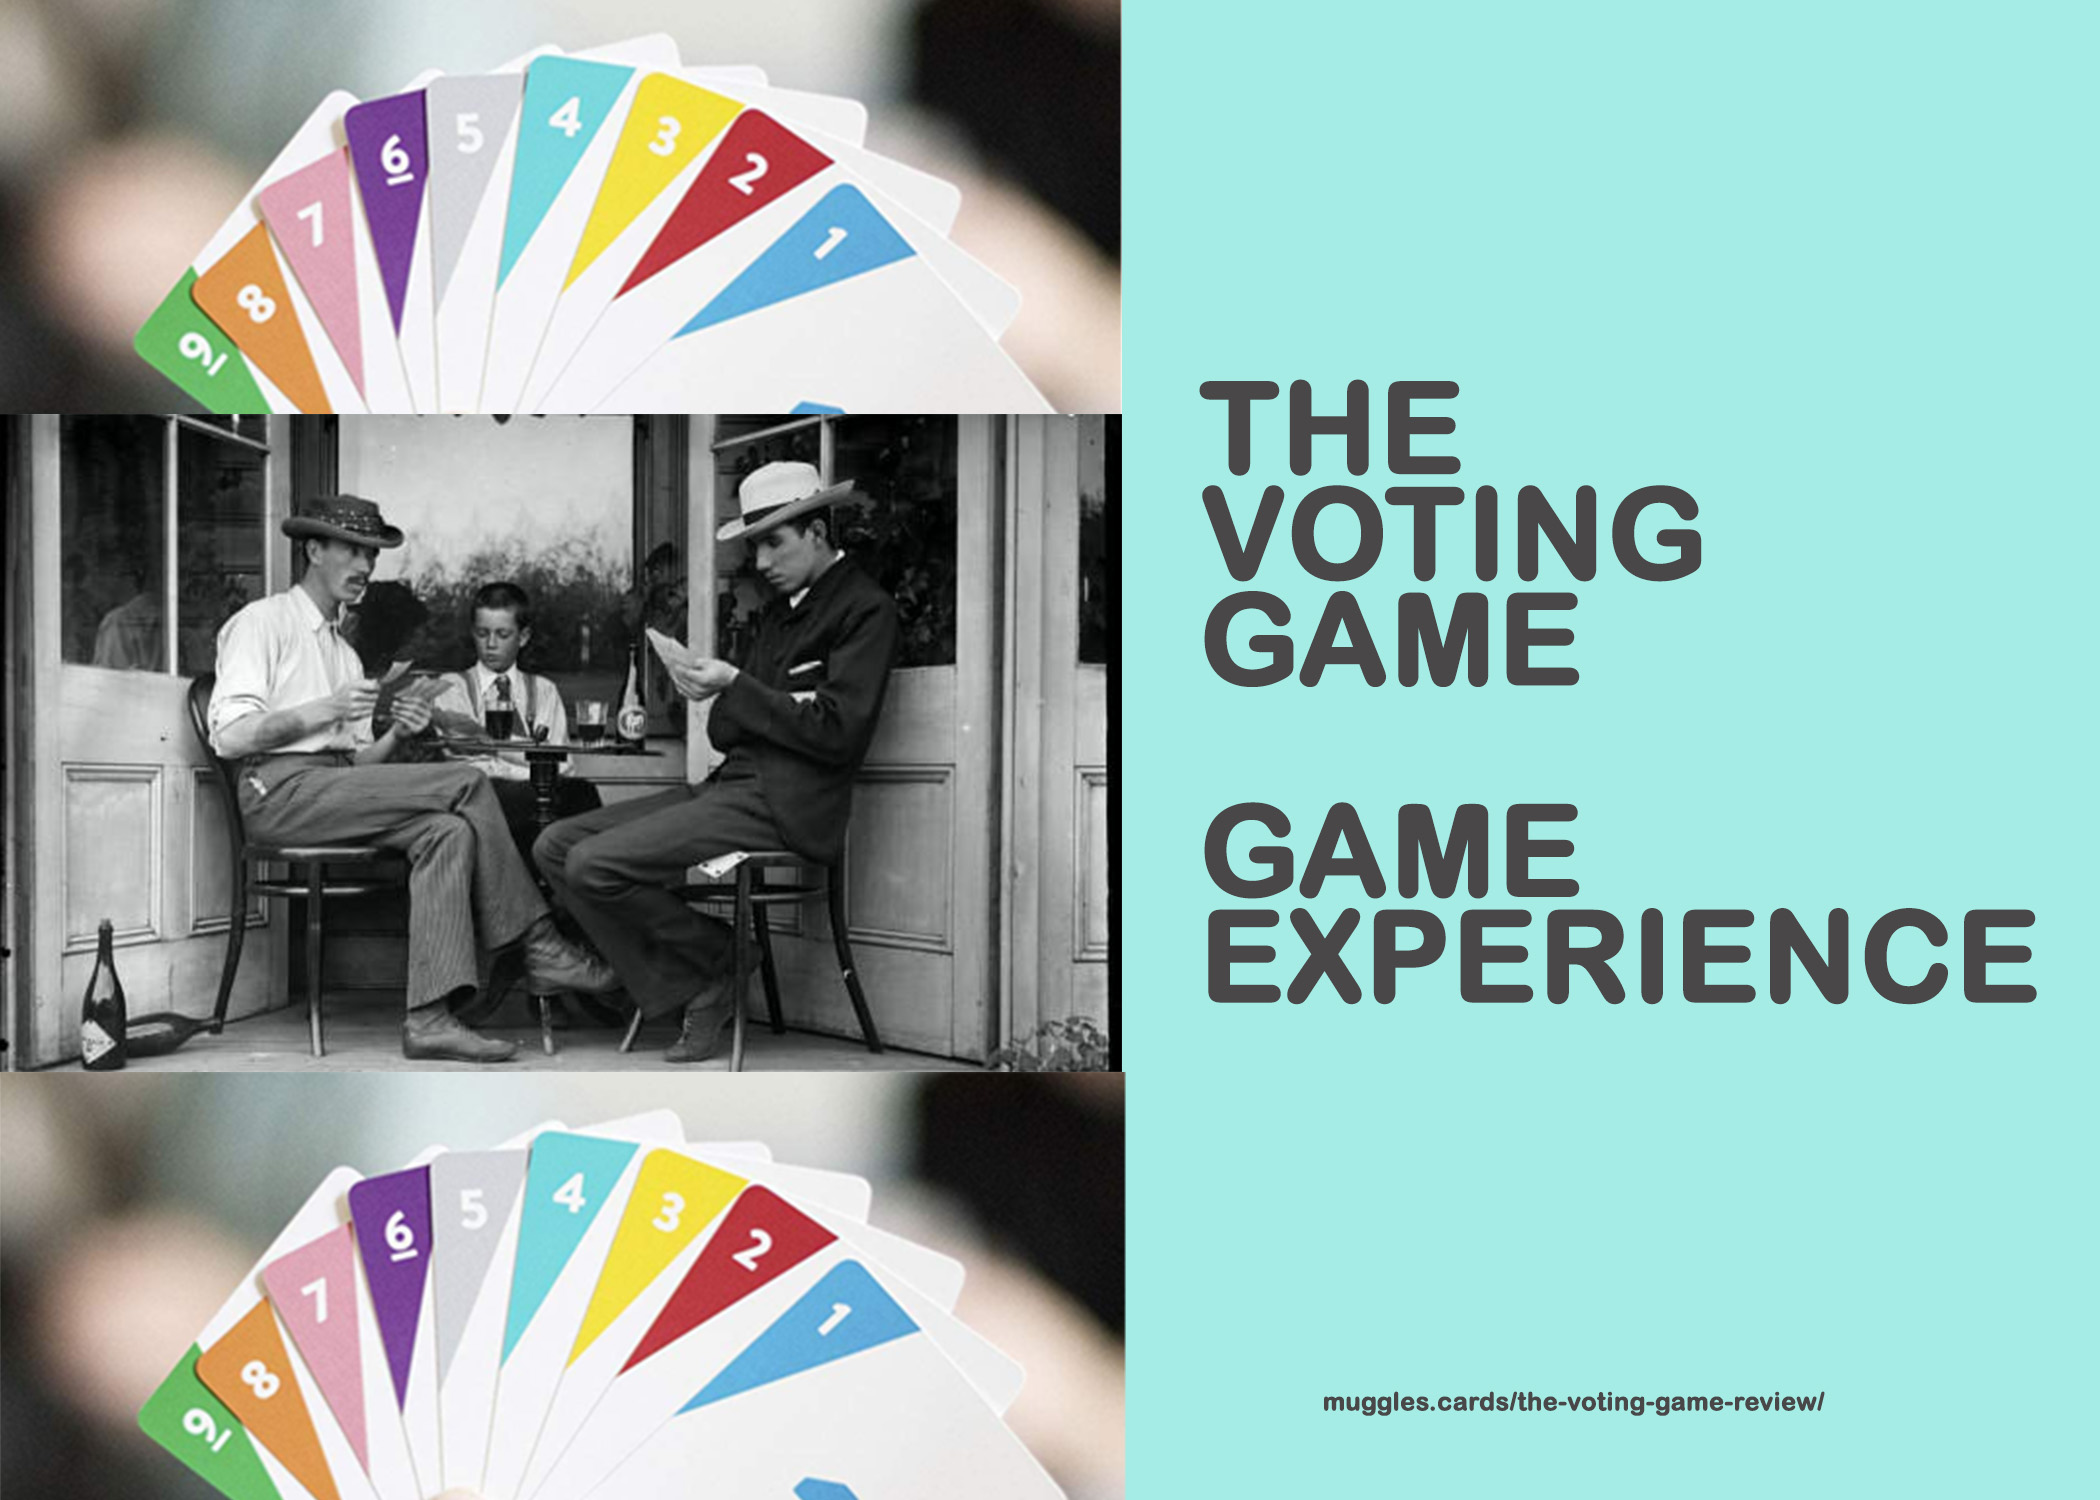 The Voting Game Experience